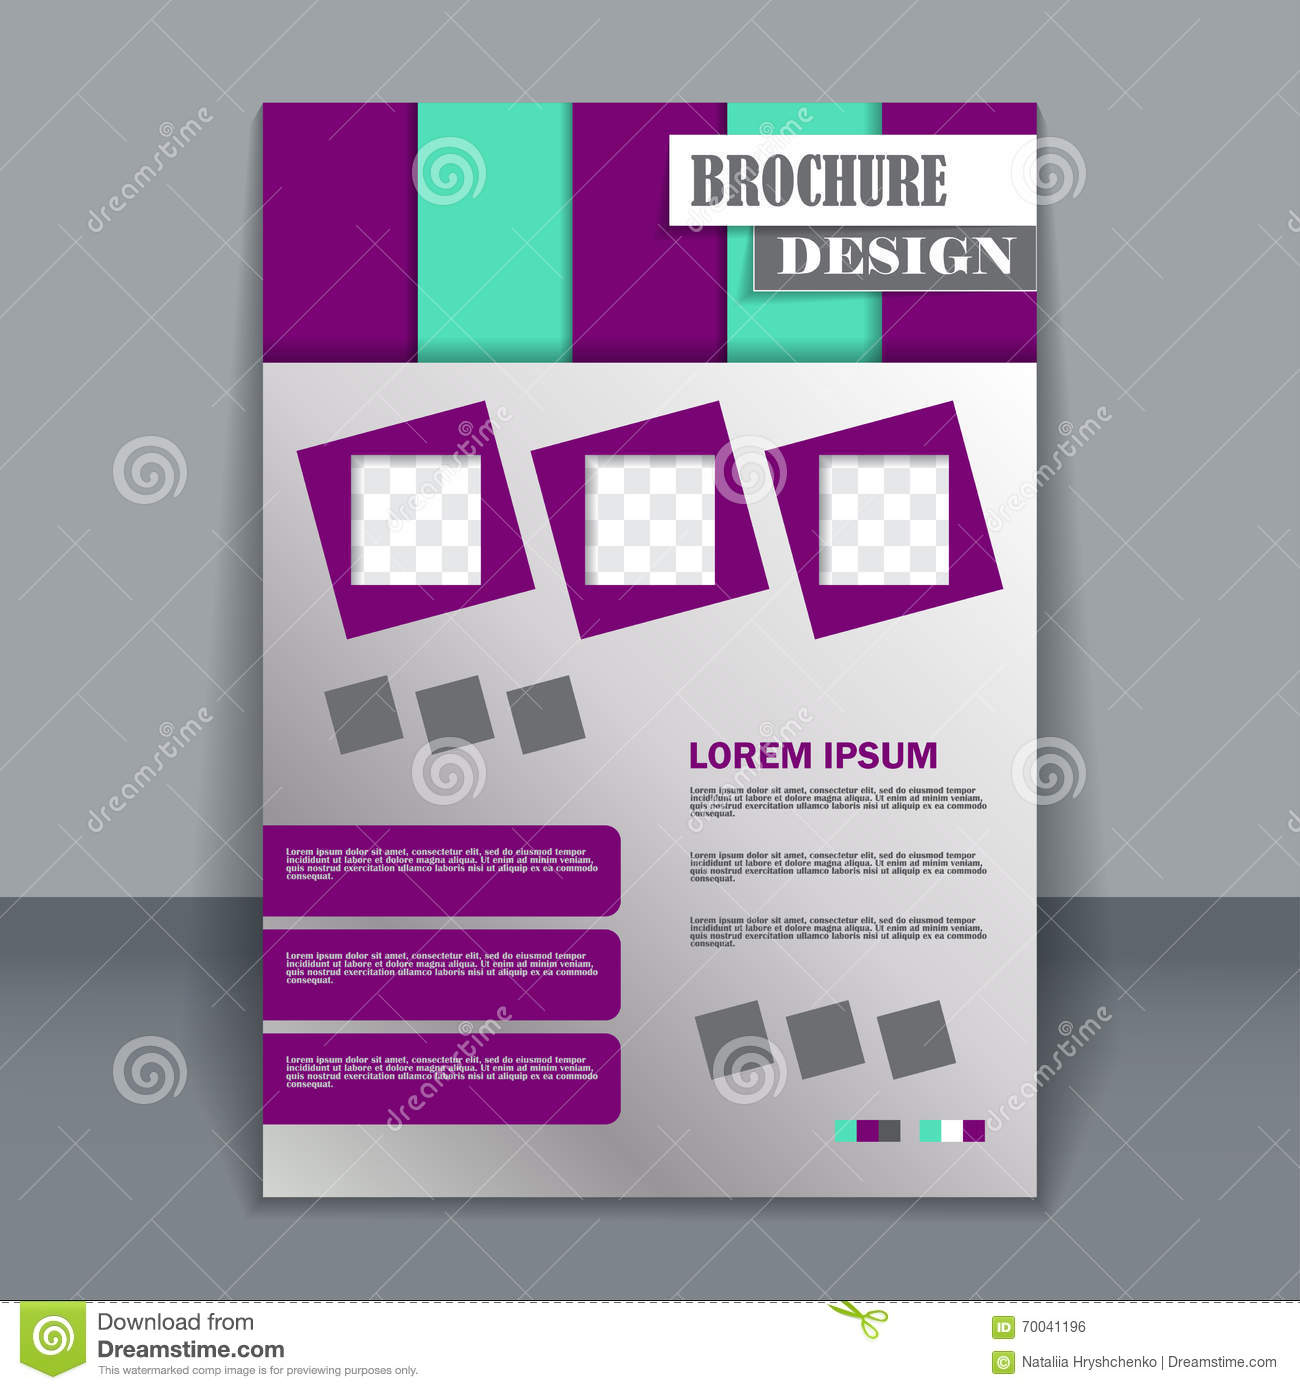 template for making a flyer